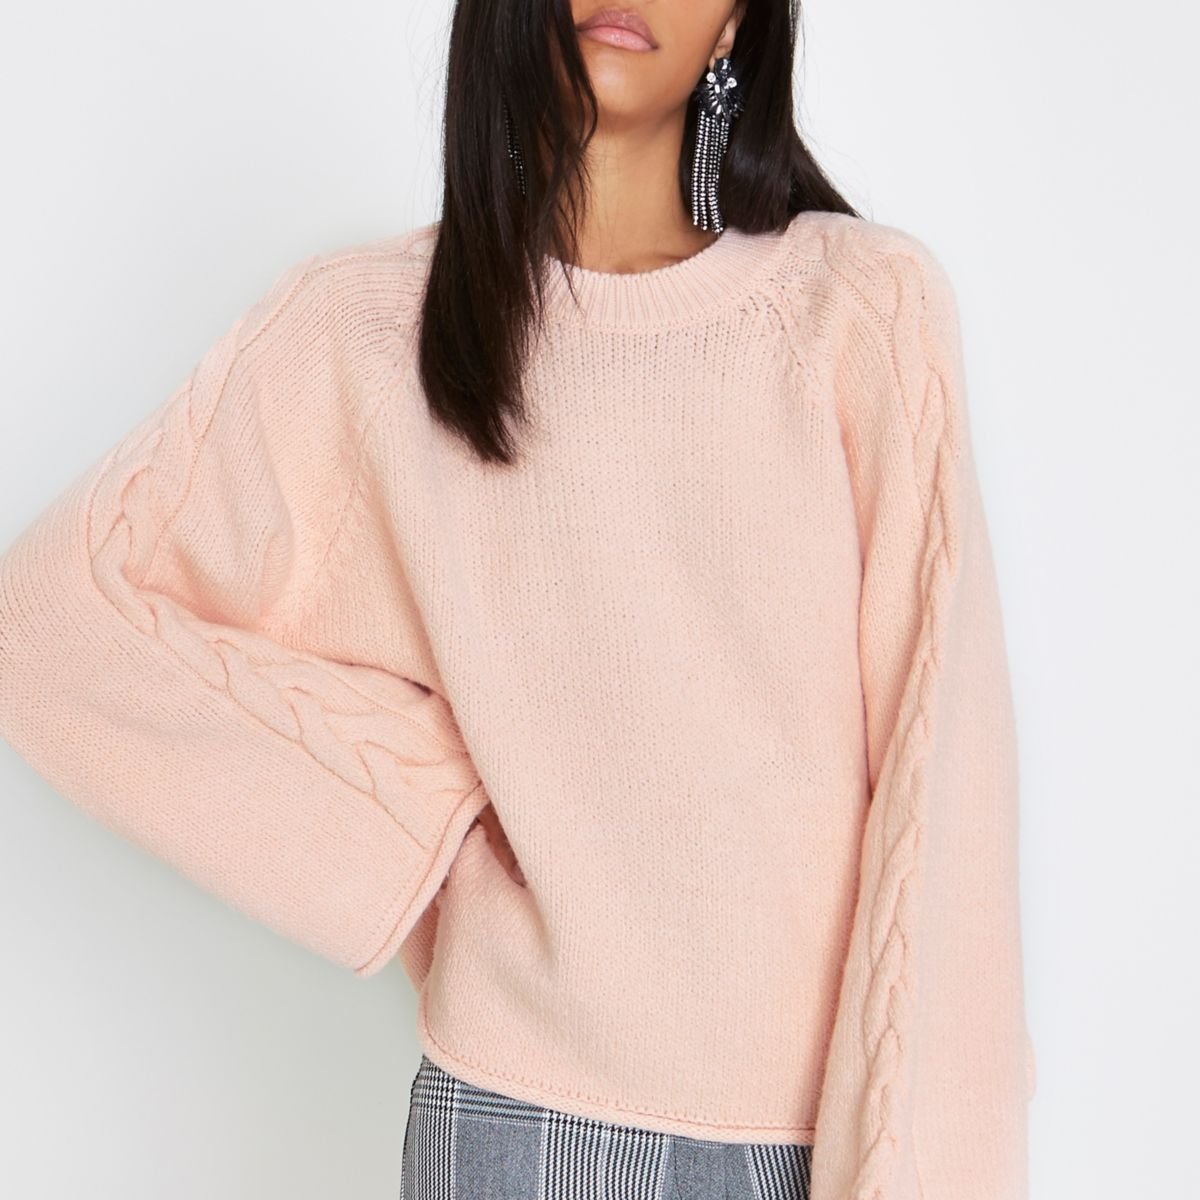 Cable-Knit Cotton-Cashmere Sweater $ Free Standard Shipping on orders $ or more More colors available for Cable-Knit Cotton-Cashmere Sweater More colors available +1 Merino Wool-Alpaca Turtleneck Sweater $ Free Standard Shipping on orders $ or more.